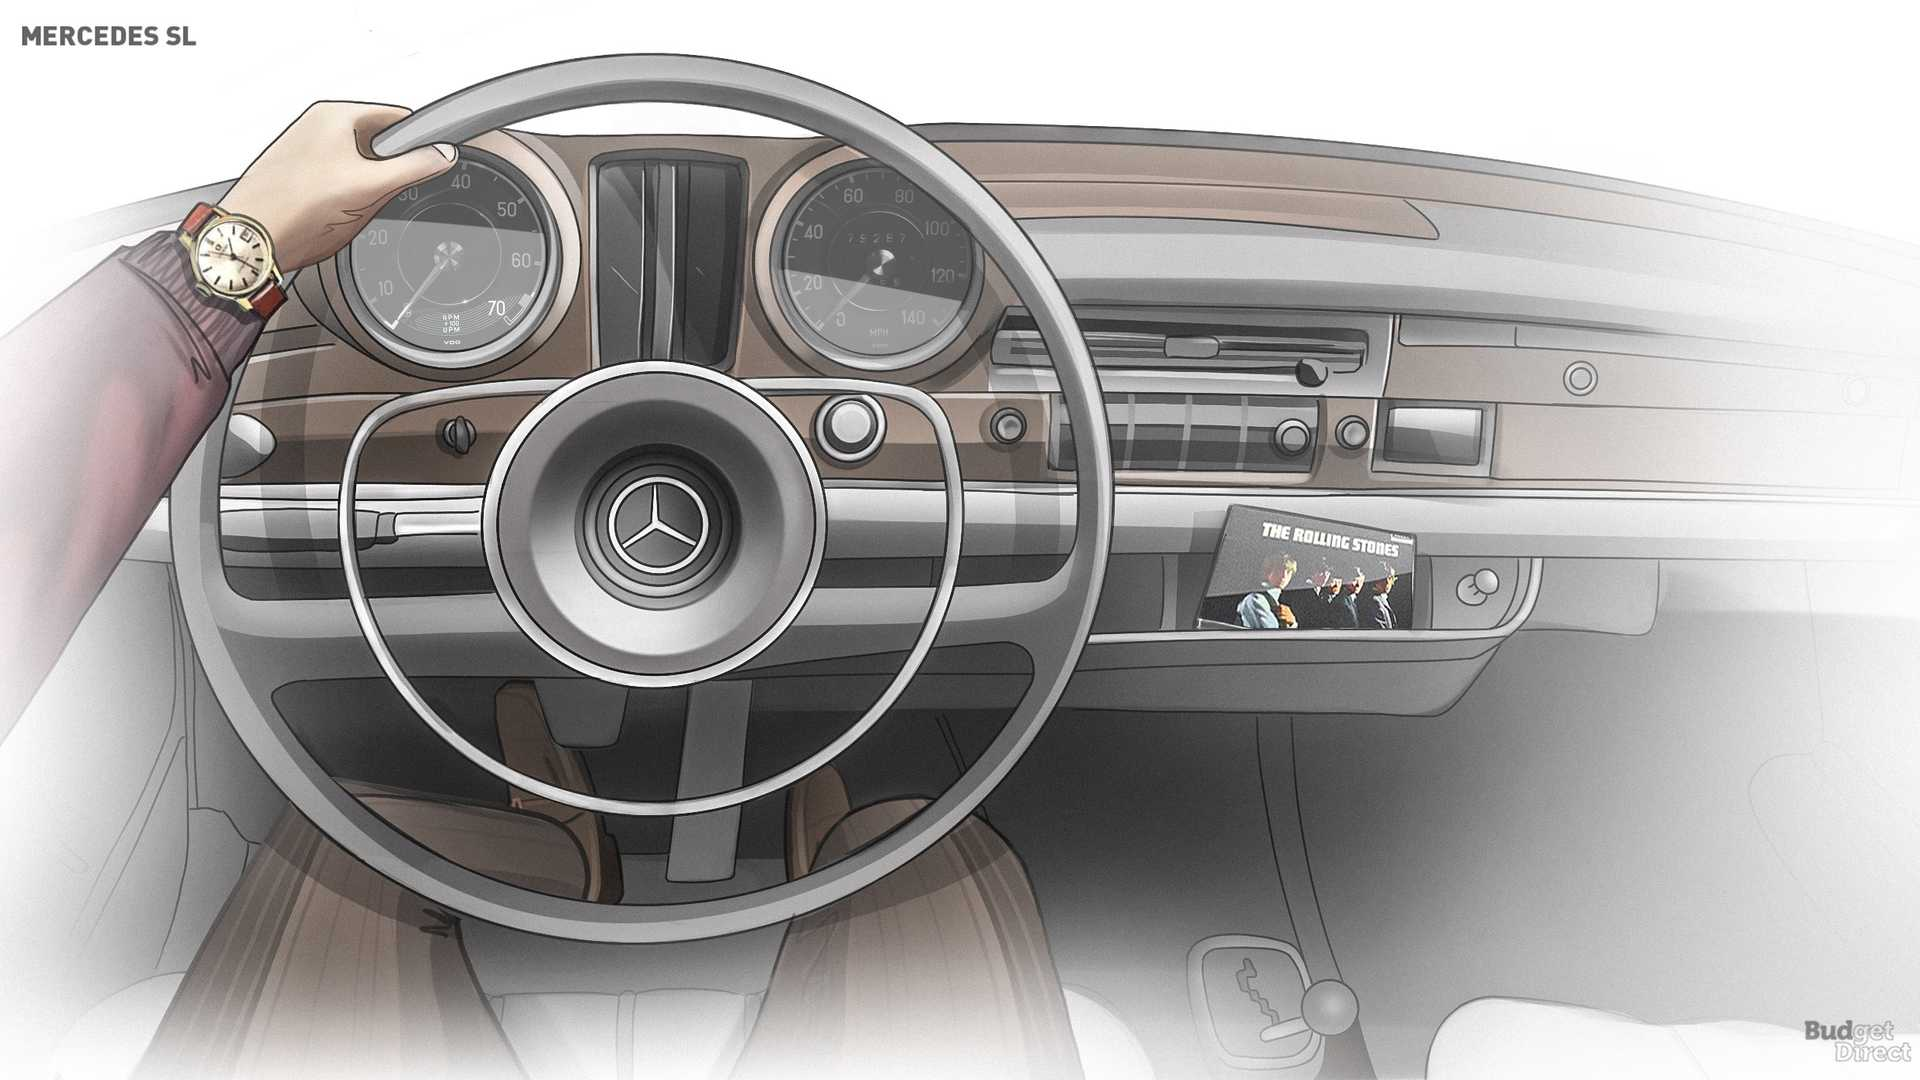 Check out the Mercedes SL interior's evolution across all 6 generations